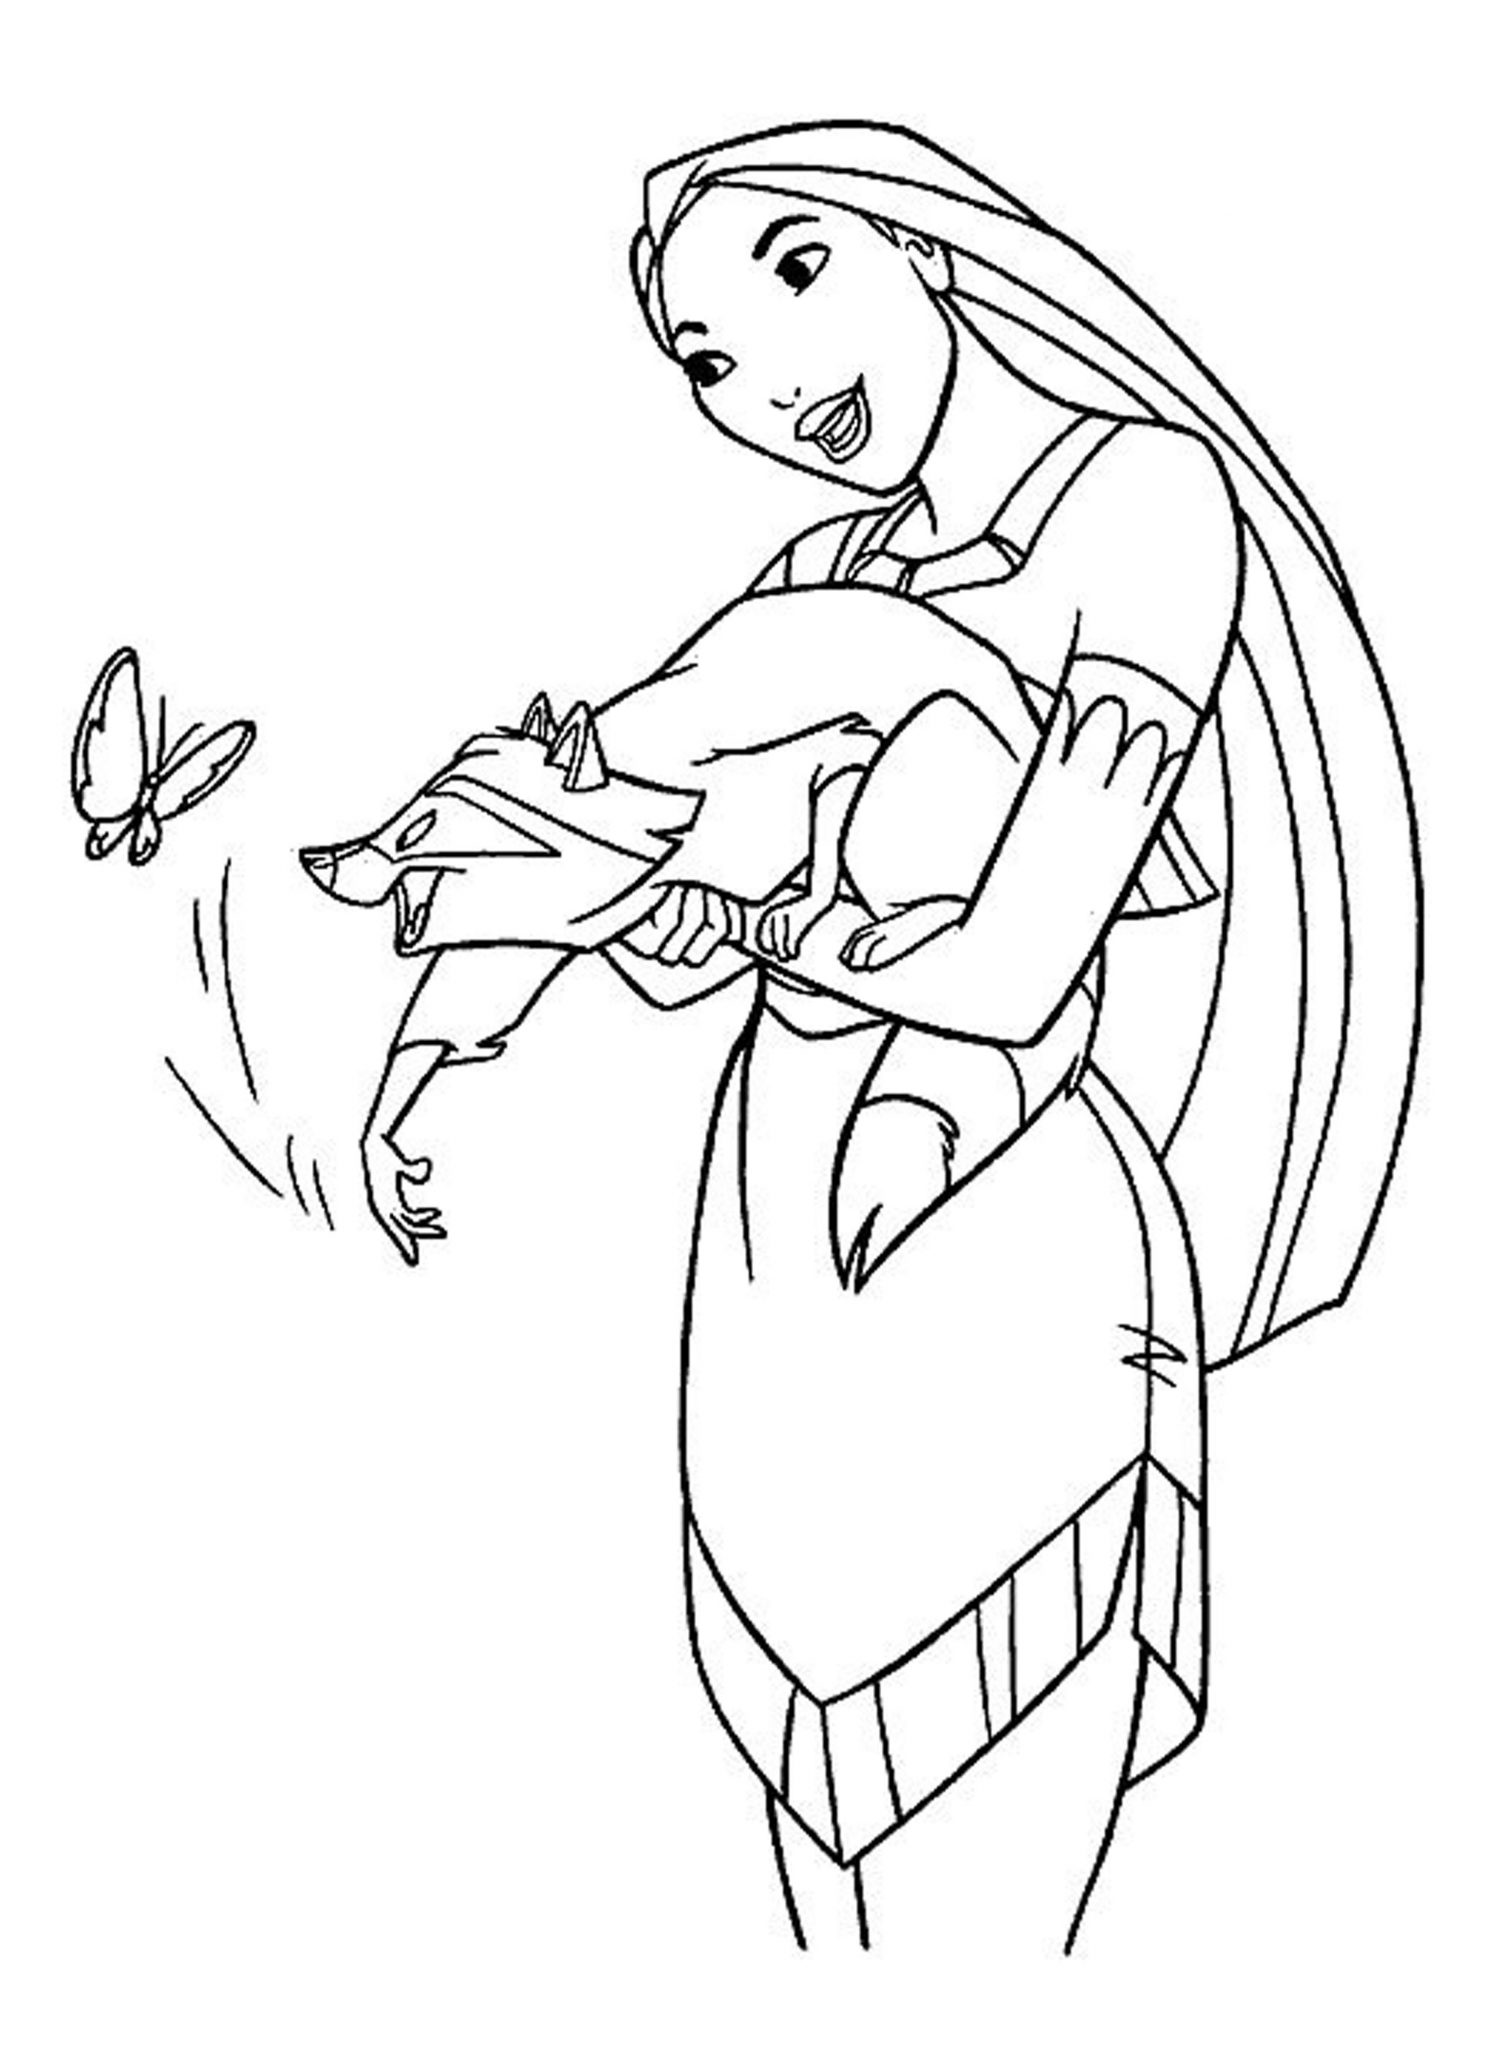 kids easy coloring book doodle art to color for kids doodle art kids coloring pages easy book coloring kids